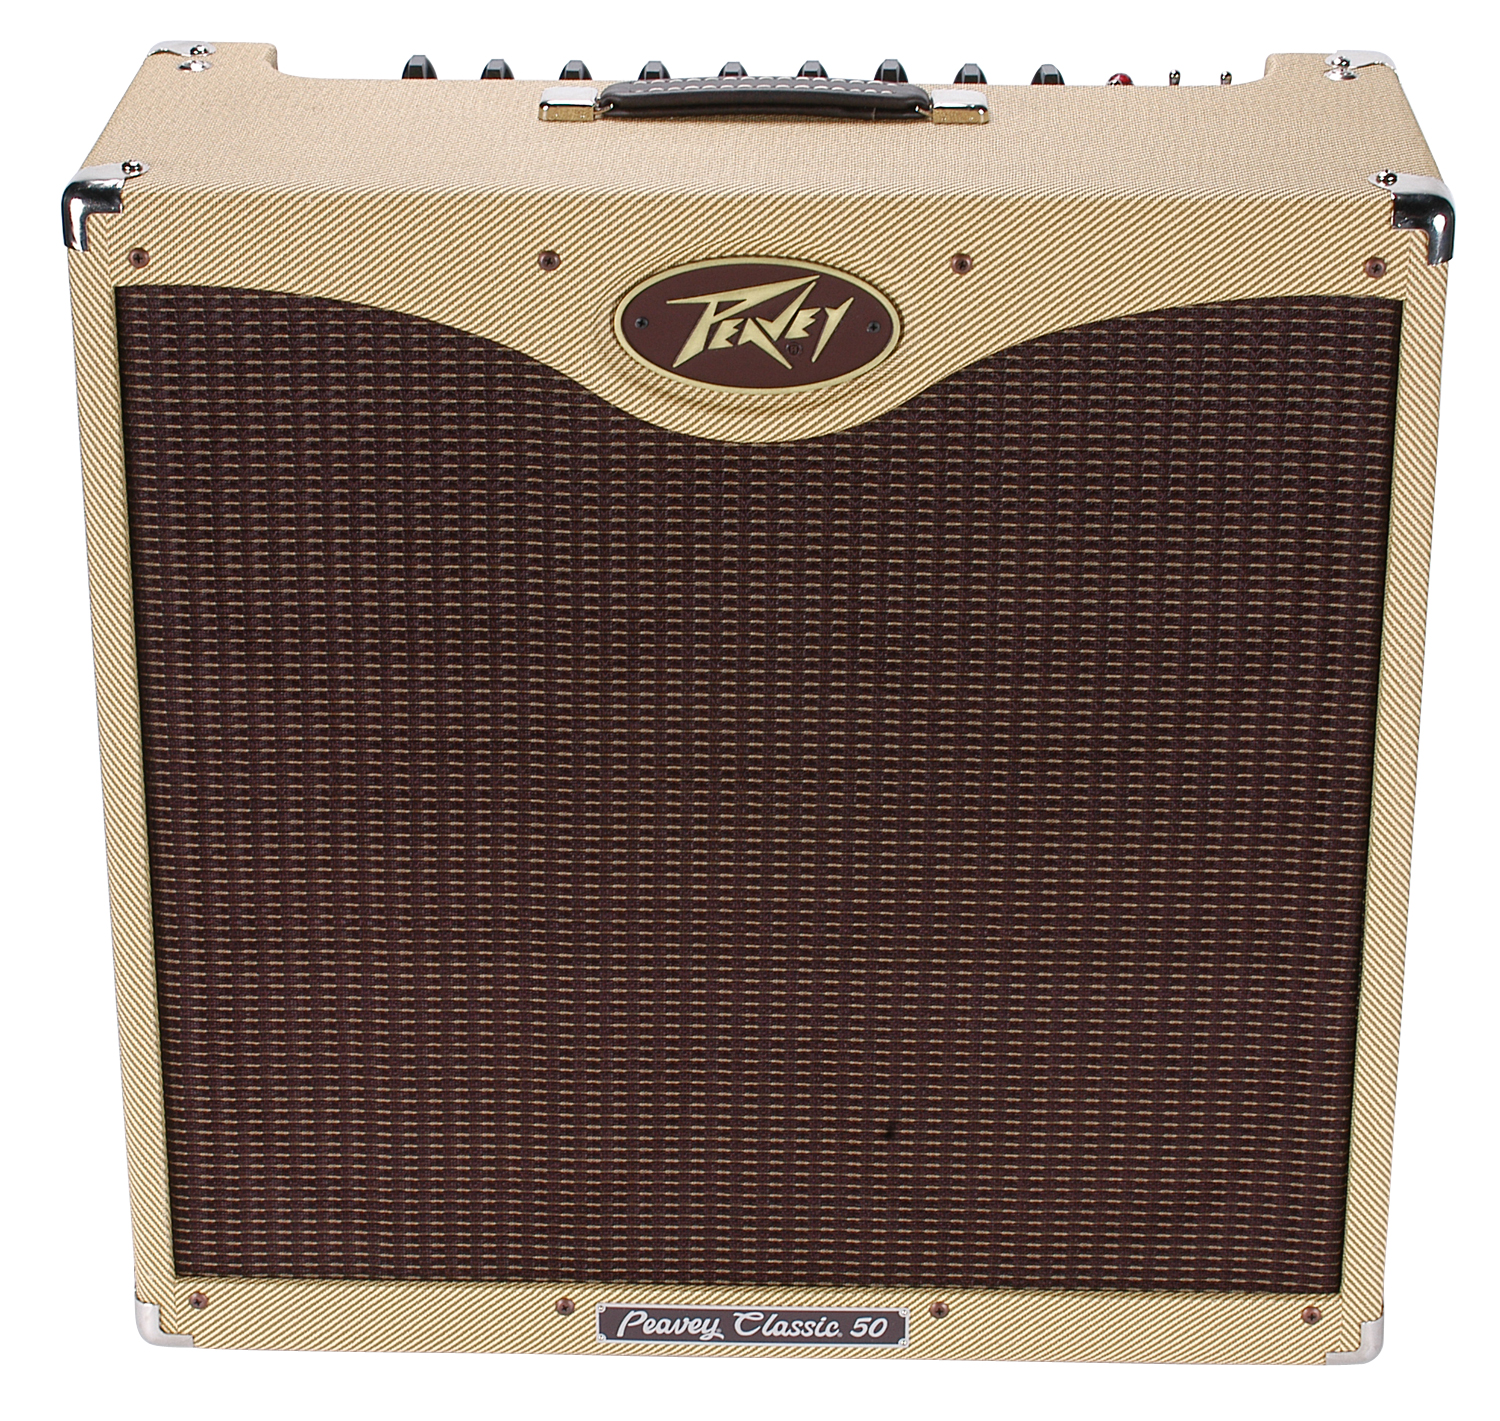 peavey classic 50 410 electric guitar combo 50w amp 10 amplifier cables pev13 583180 rs pack. Black Bedroom Furniture Sets. Home Design Ideas